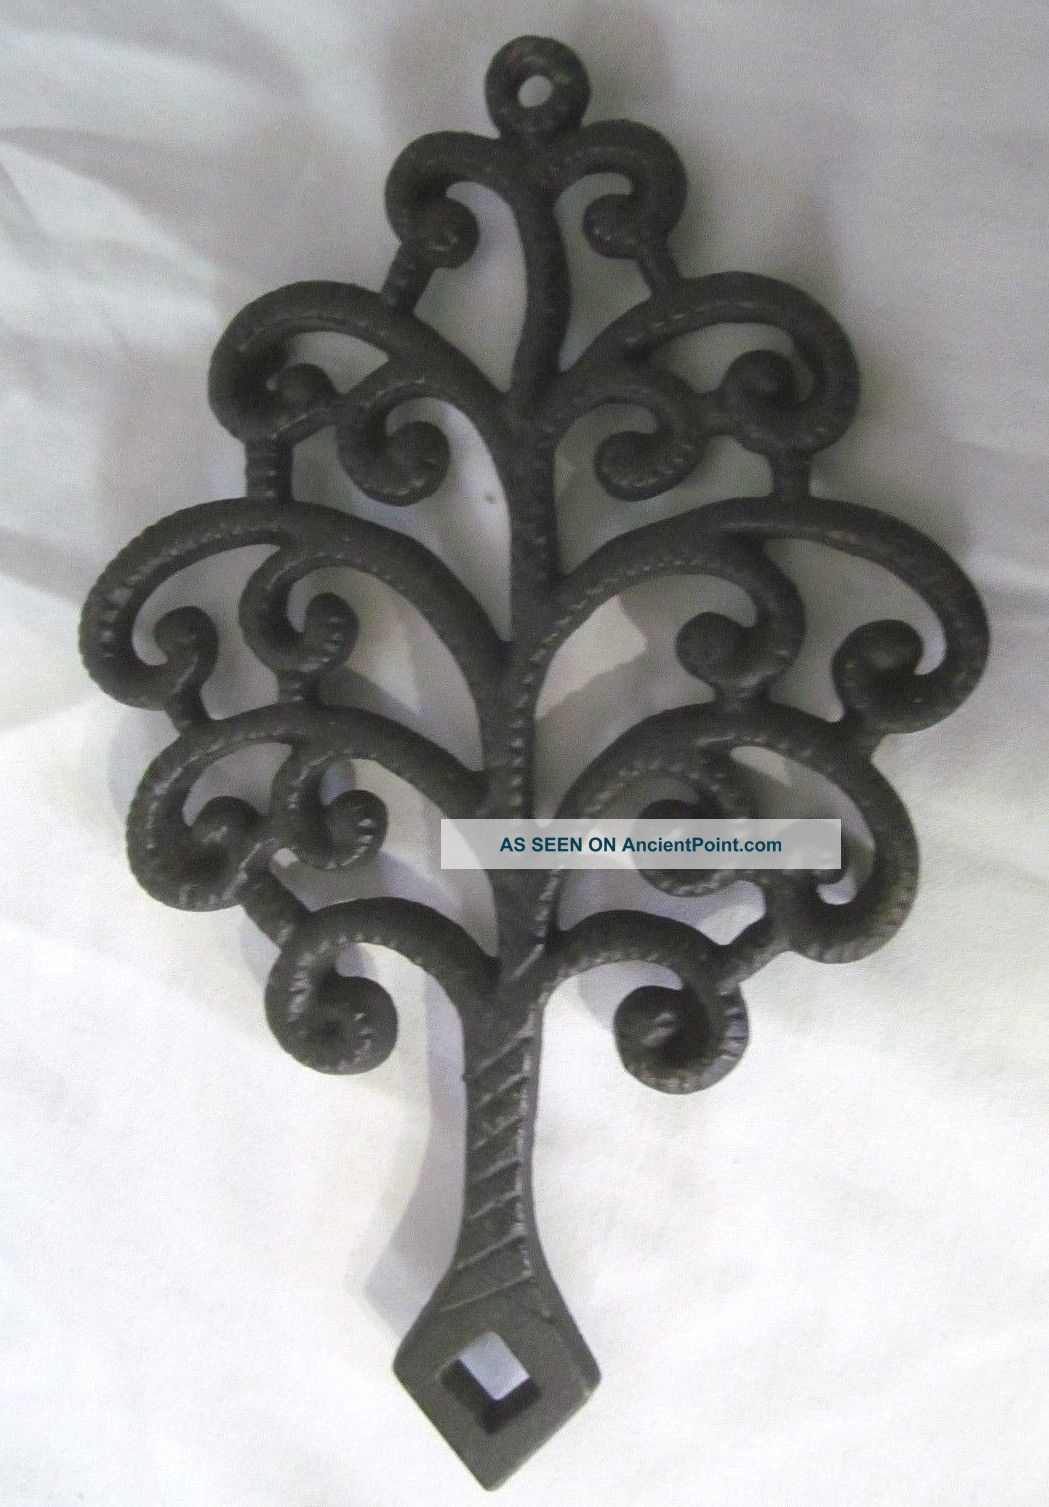 Vintage Cast Iron Trivet Family Tree Footed Hot Plate Signed Jzh Stamp 1951 13 Trivets photo